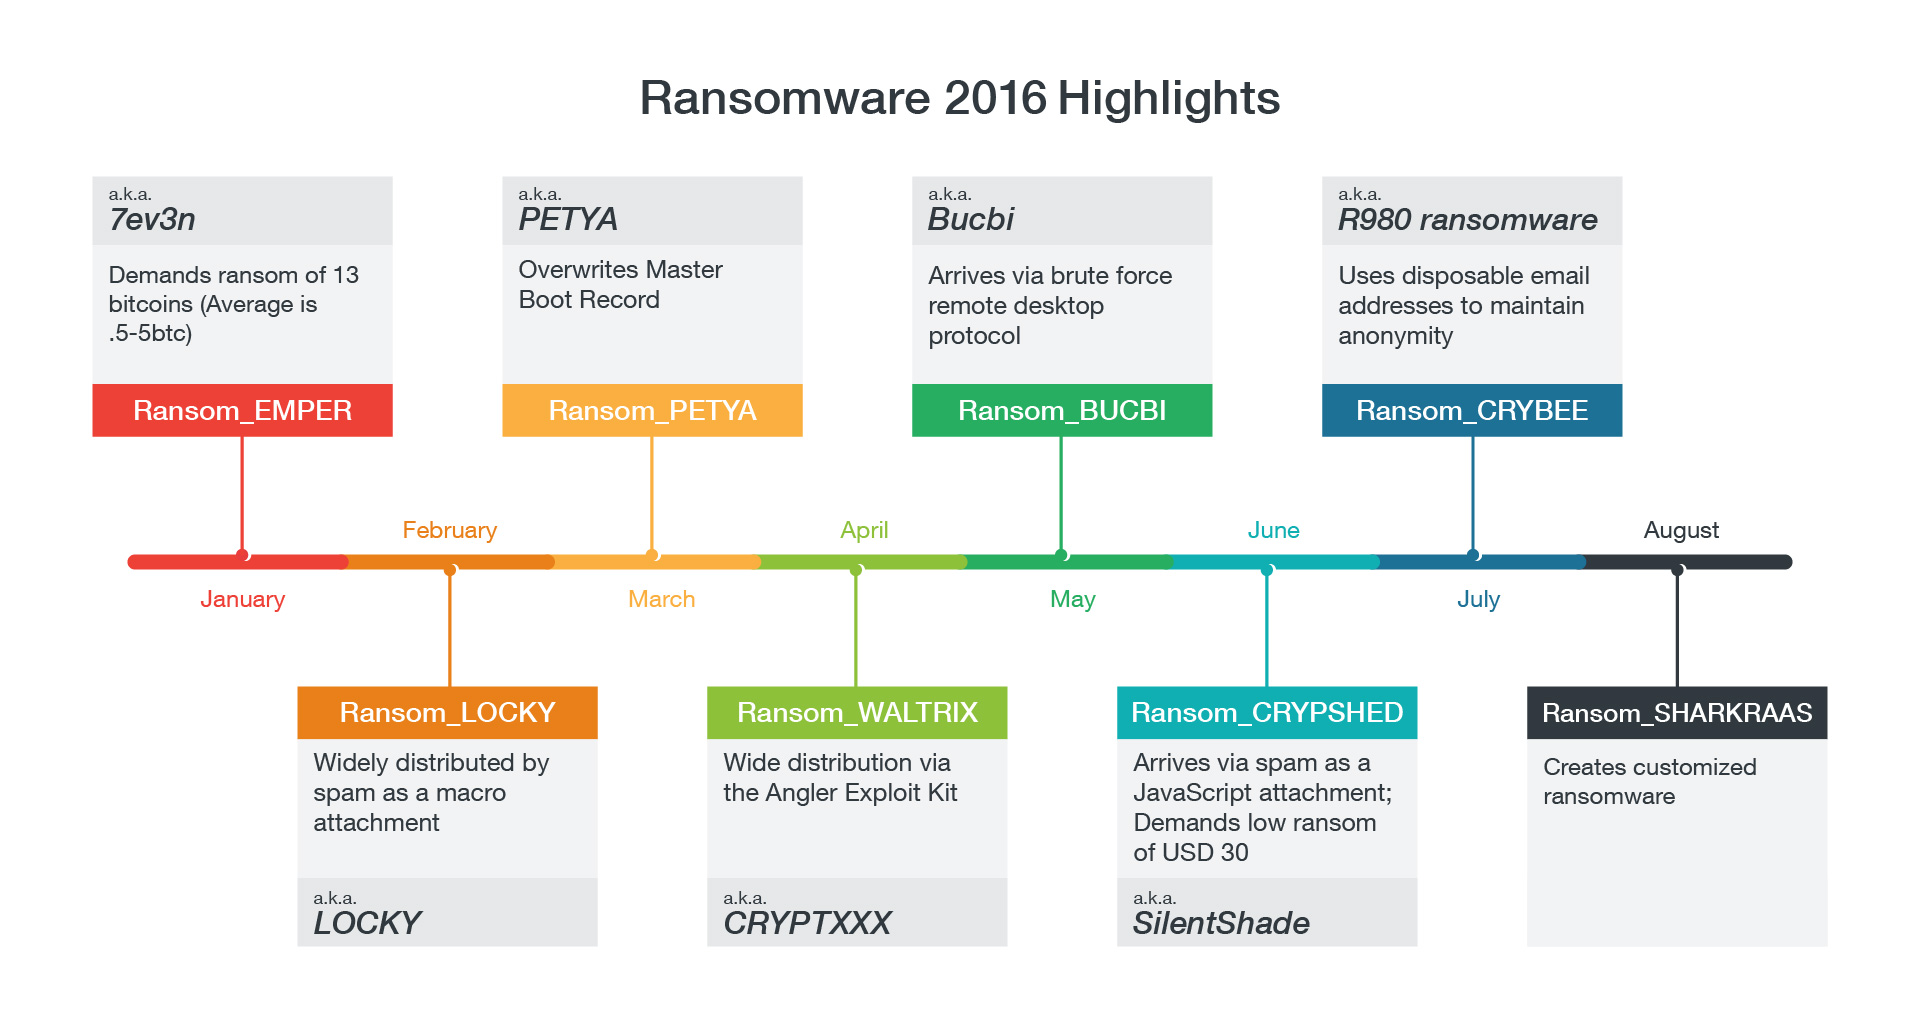 ransomware-families-2016